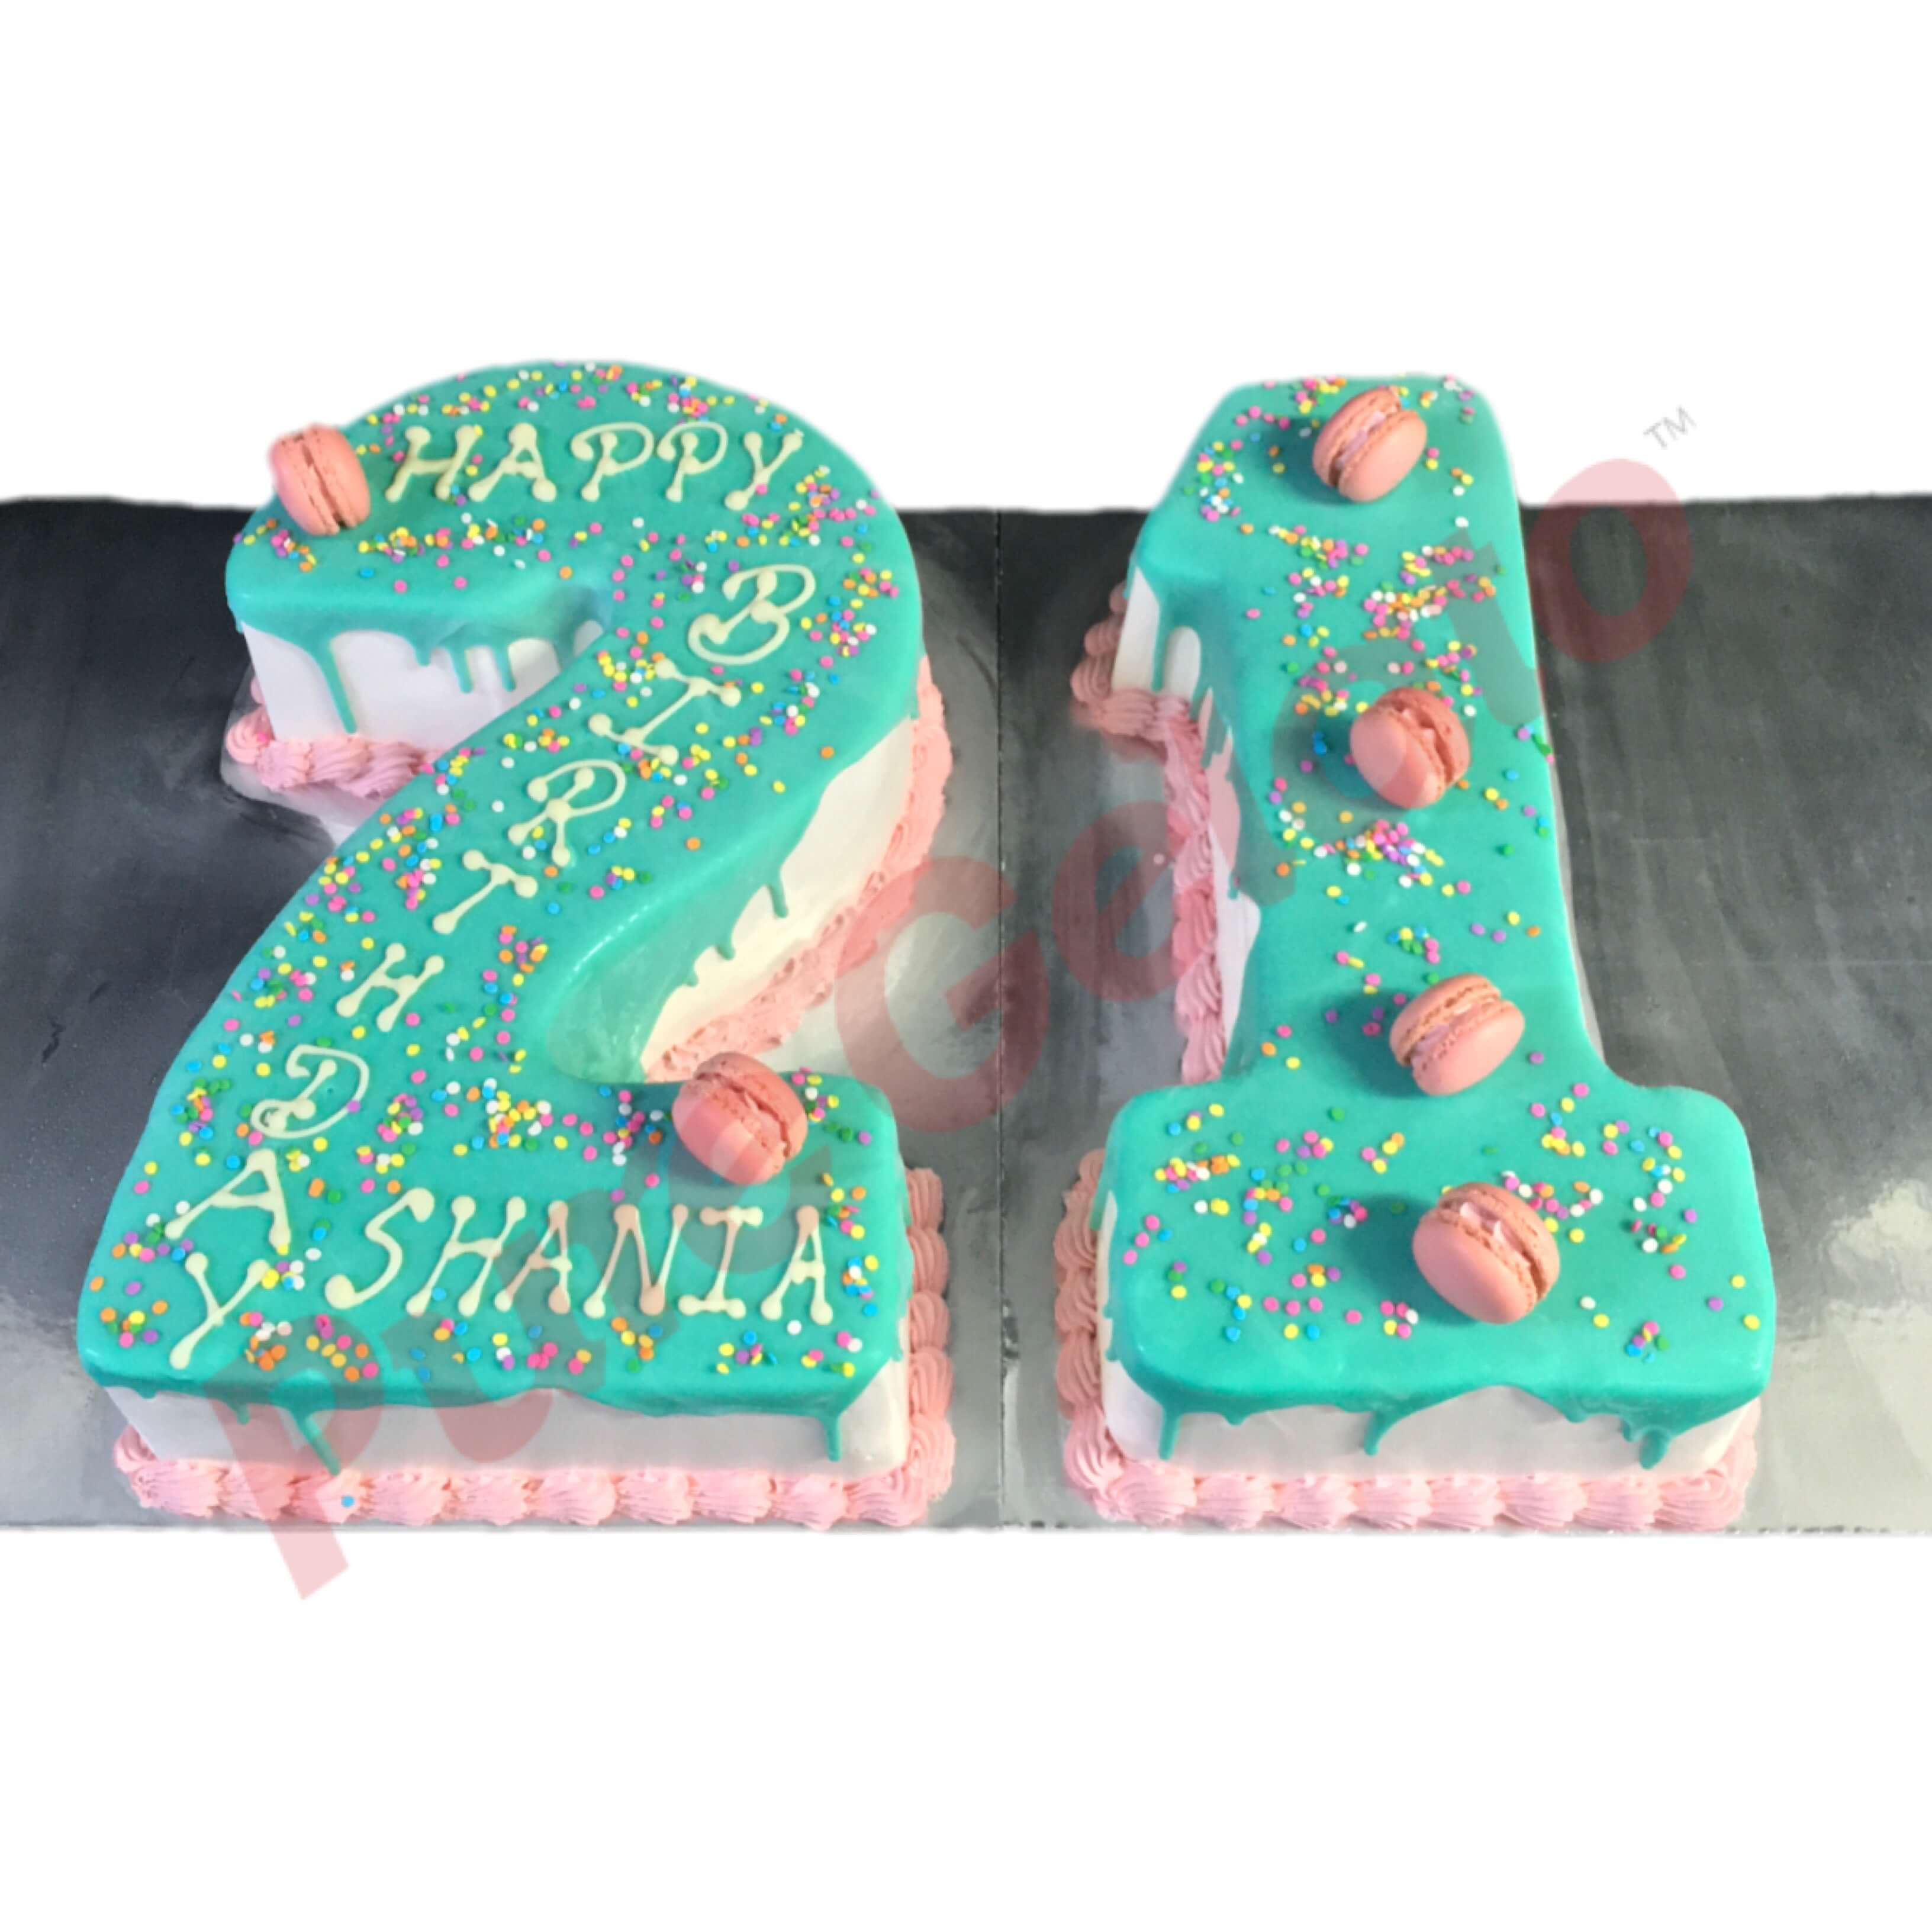 Numeral Cakes (Double Digits)